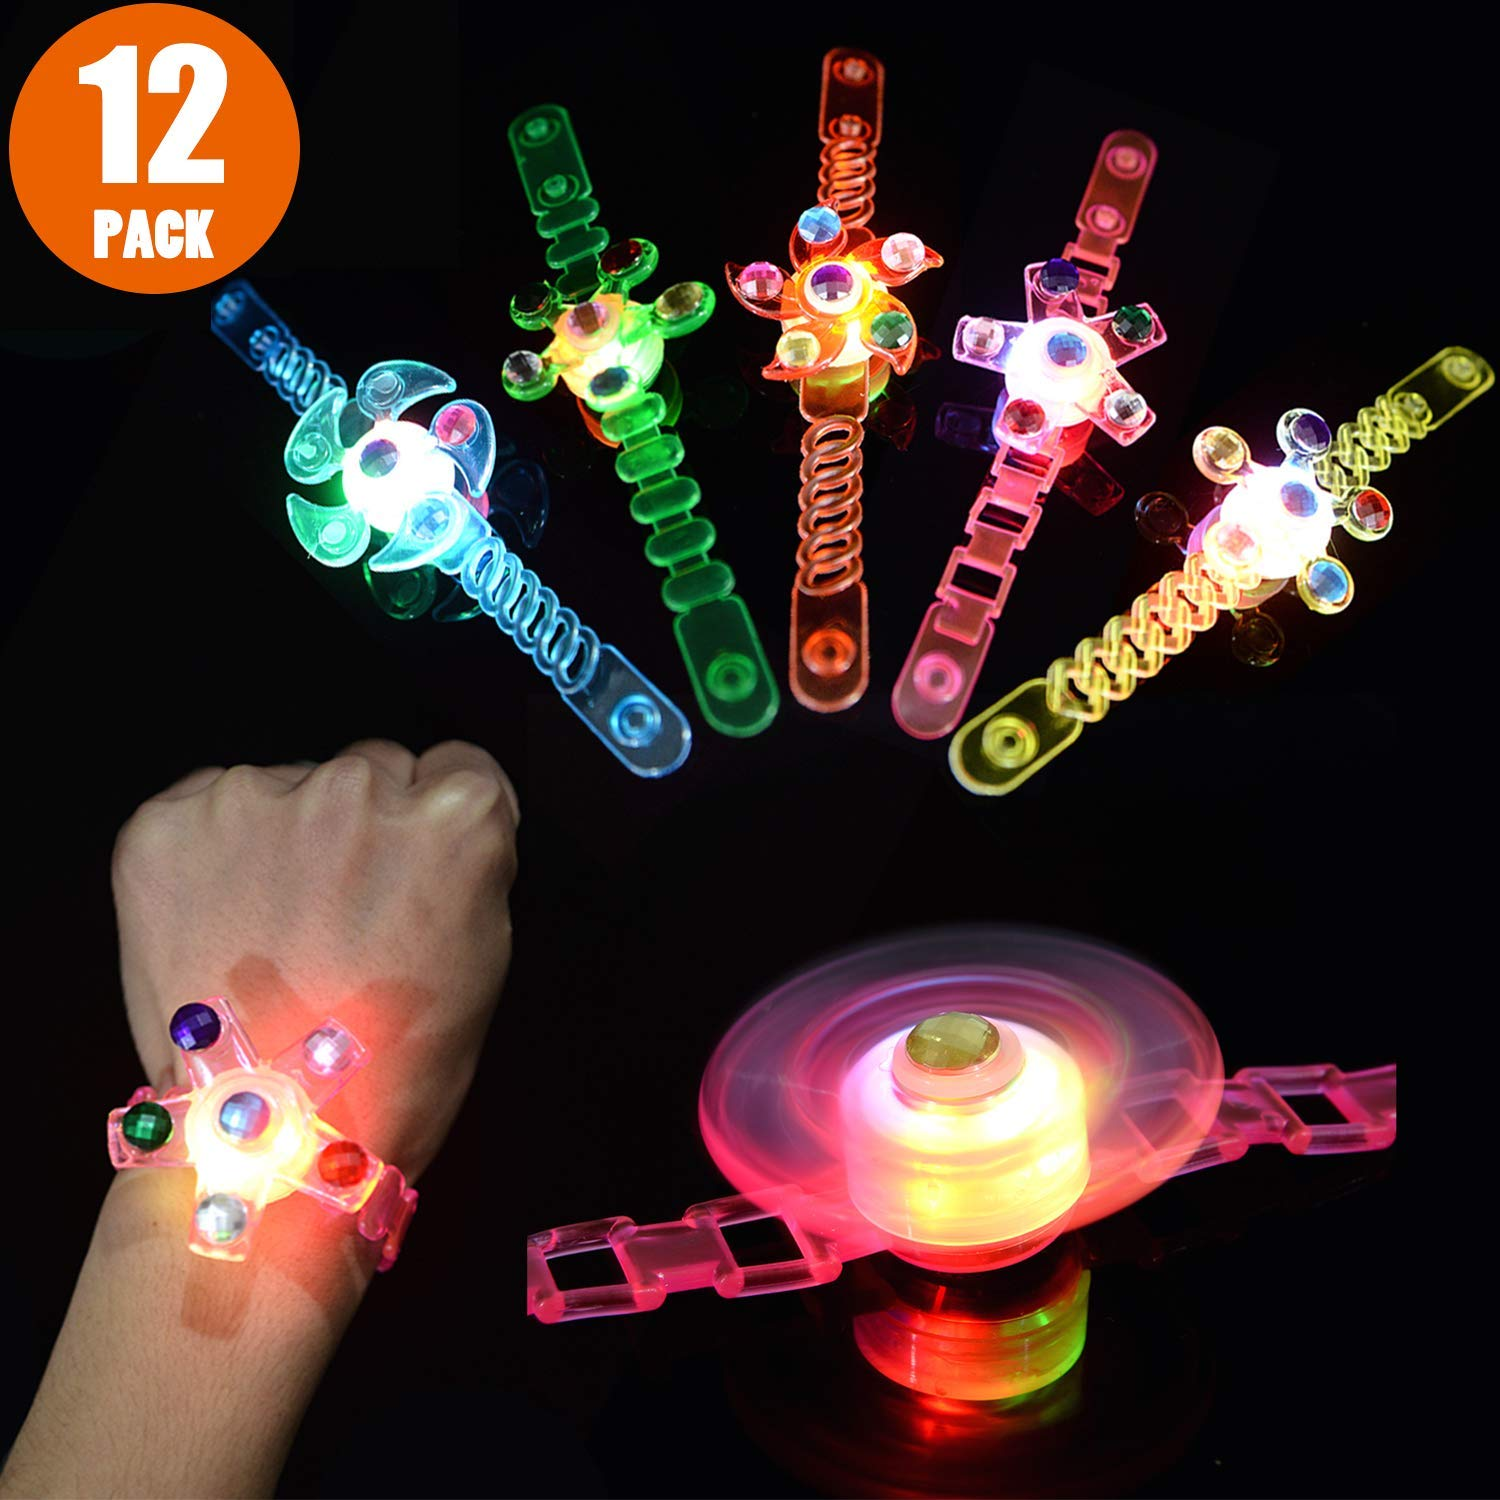 Mikulala Glow in The Dark Birthday Party Favors for Kids Prizes Box Toys for Classroom 12 Pack Light Up Toys Hand Spin Stress Relief Anxiety Toys Bulk Fidget Toys Boys Girls by Mikulala